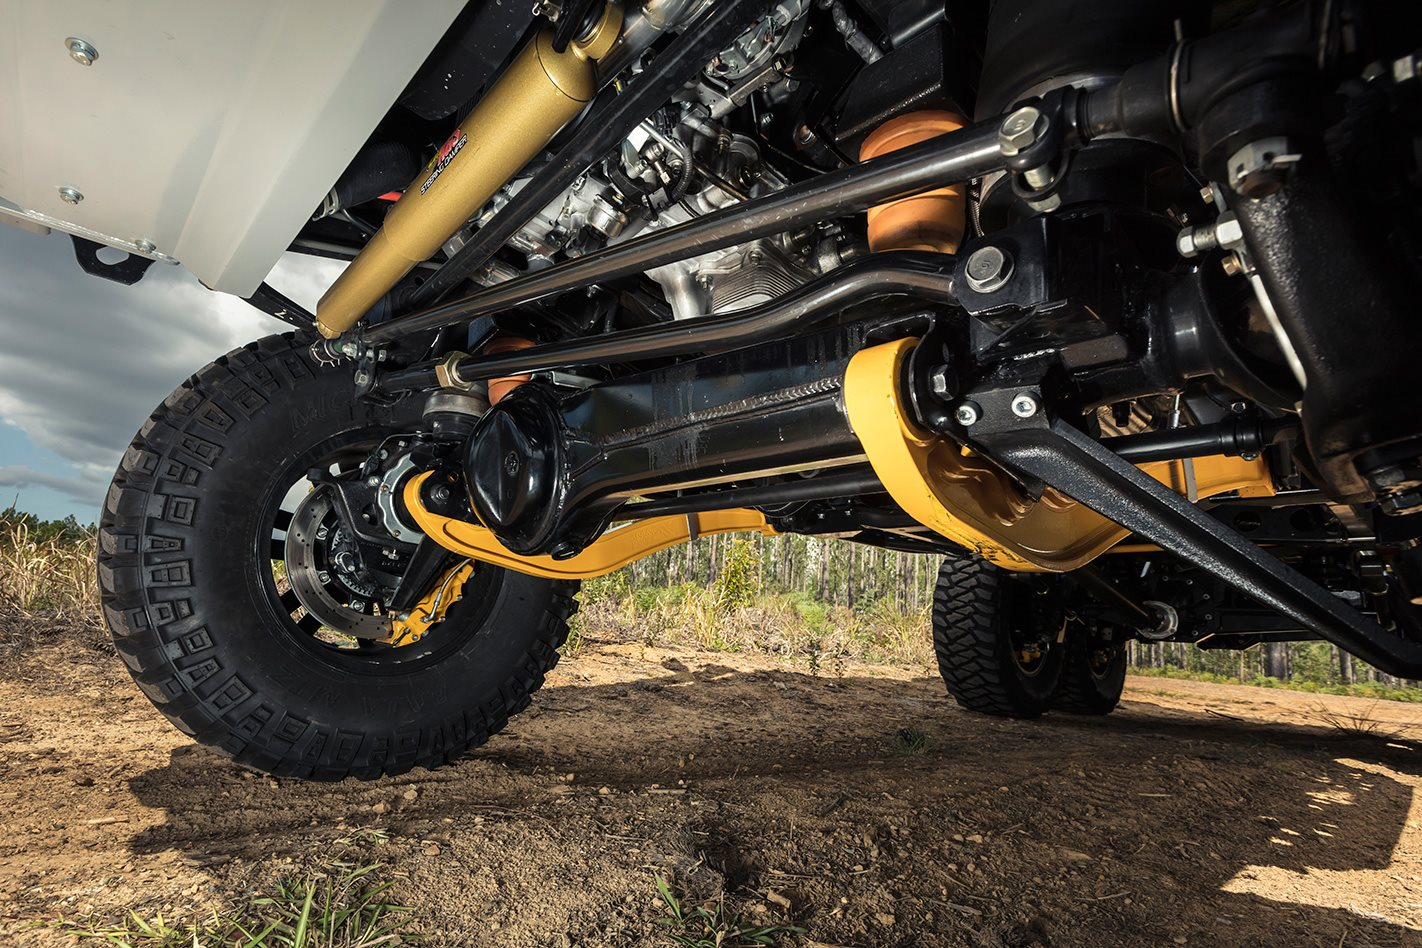 Patriot Campers 6x6 Toyota LC79 wheels